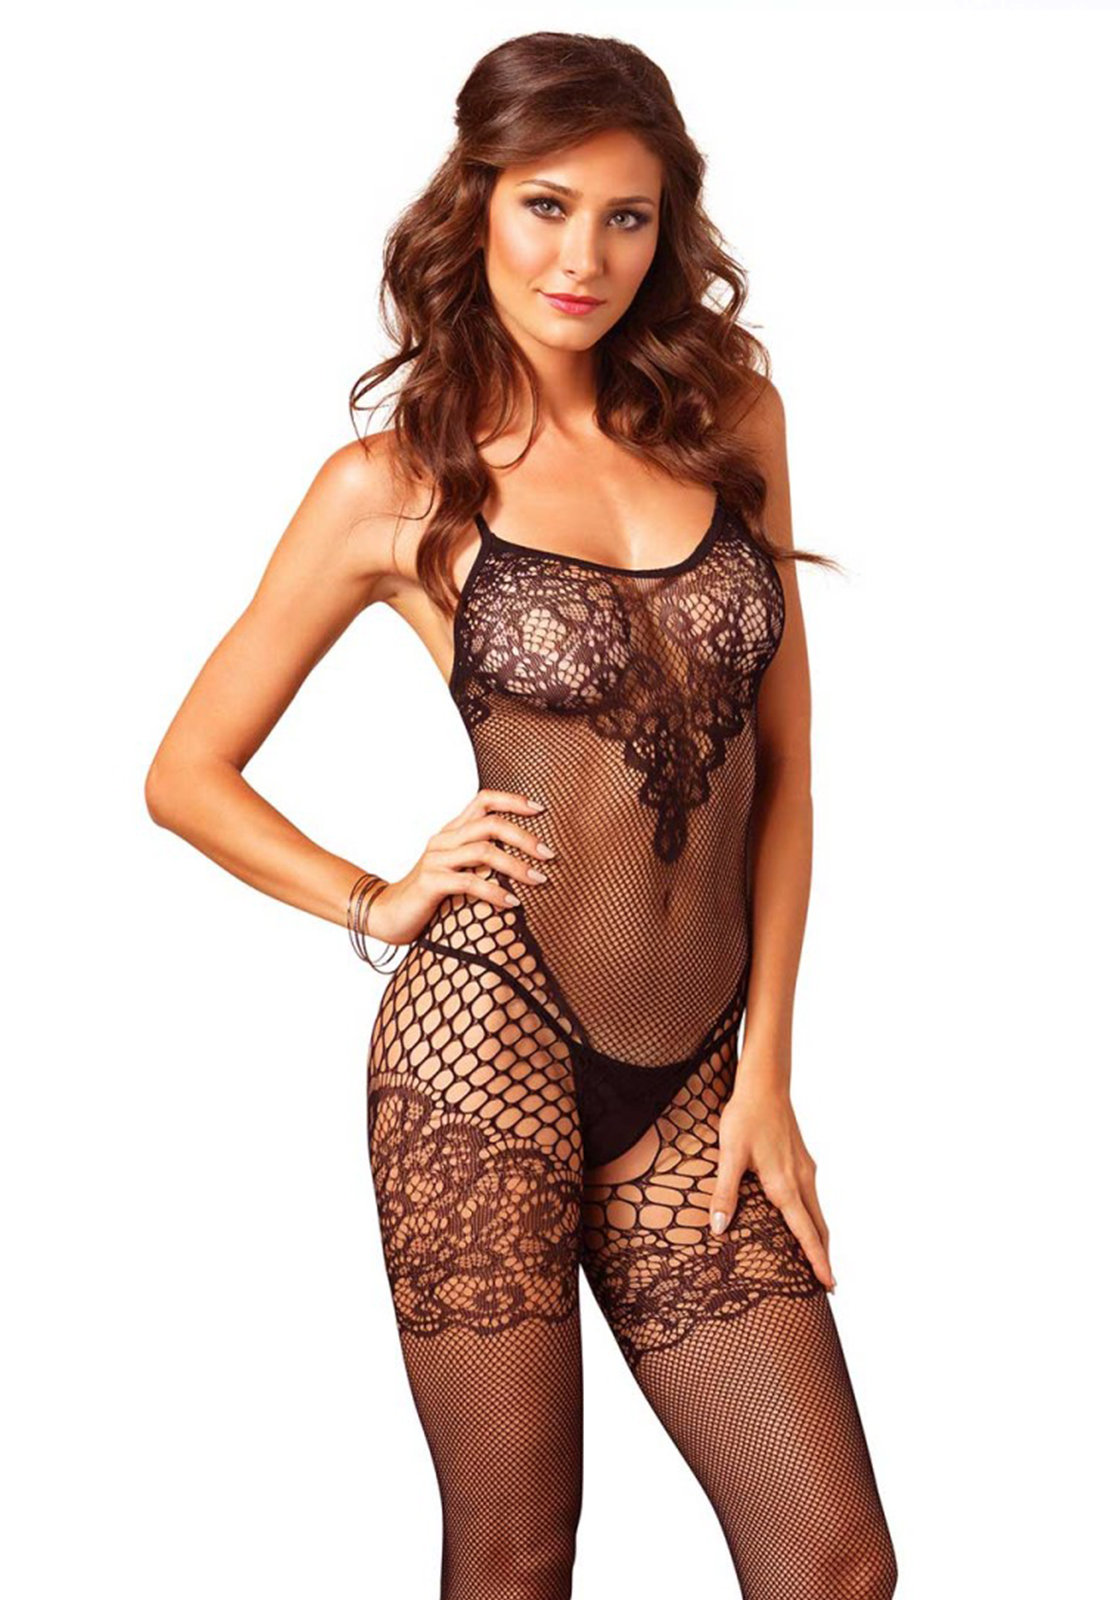 537b3104a Seamless bodystocking with different variantions of fishnet. The bodice and  garter have a lace detail ...